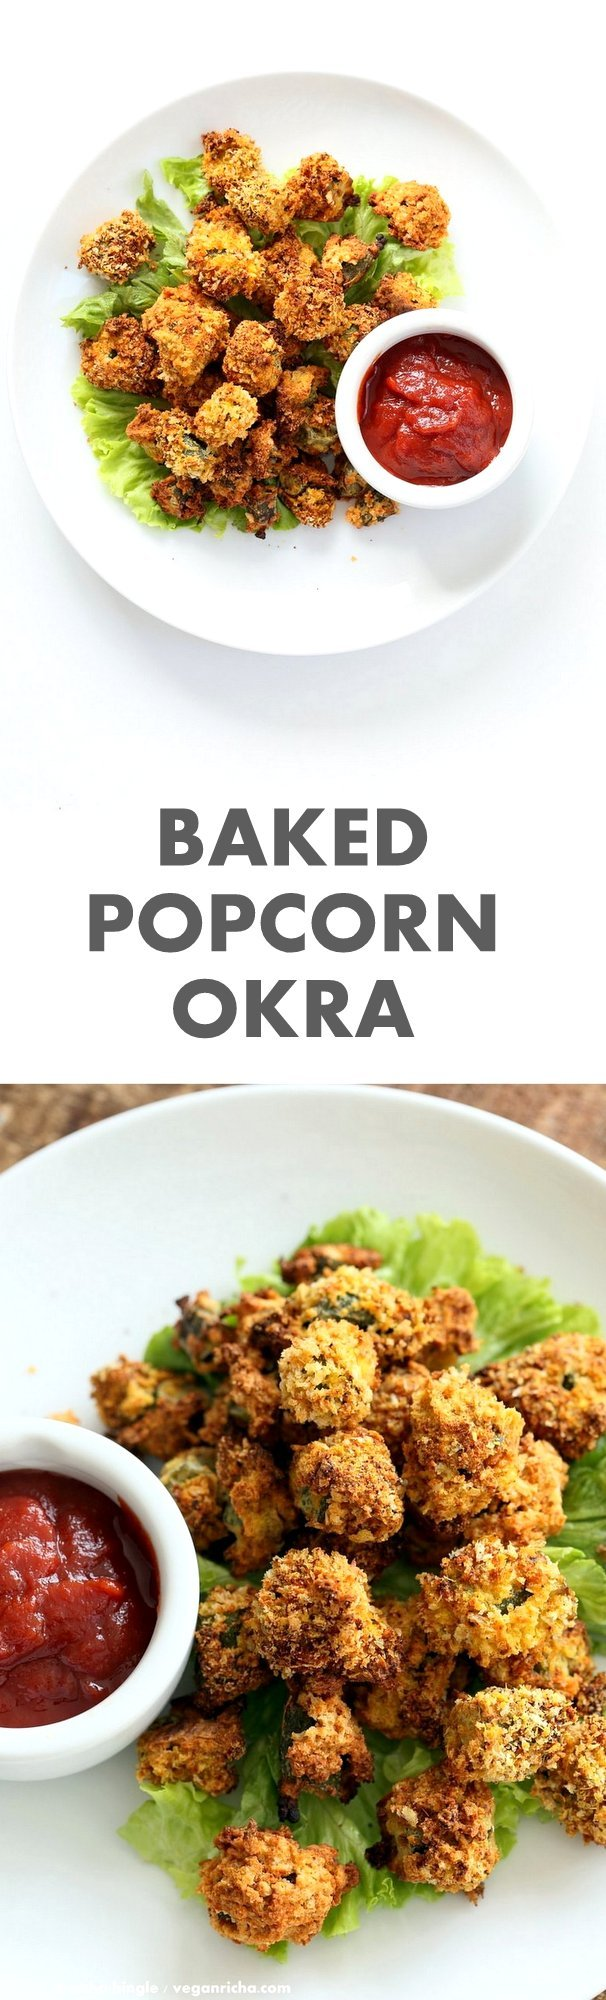 Baked Popcorn Okra. Okra / Bhindi coated in chickpea flour batter, tossed in spiced breadcrumbs and baked until crunchy crisp. #Vegan #Recipe, can be #glutenfree and #oilfree.   VeganRicha.com